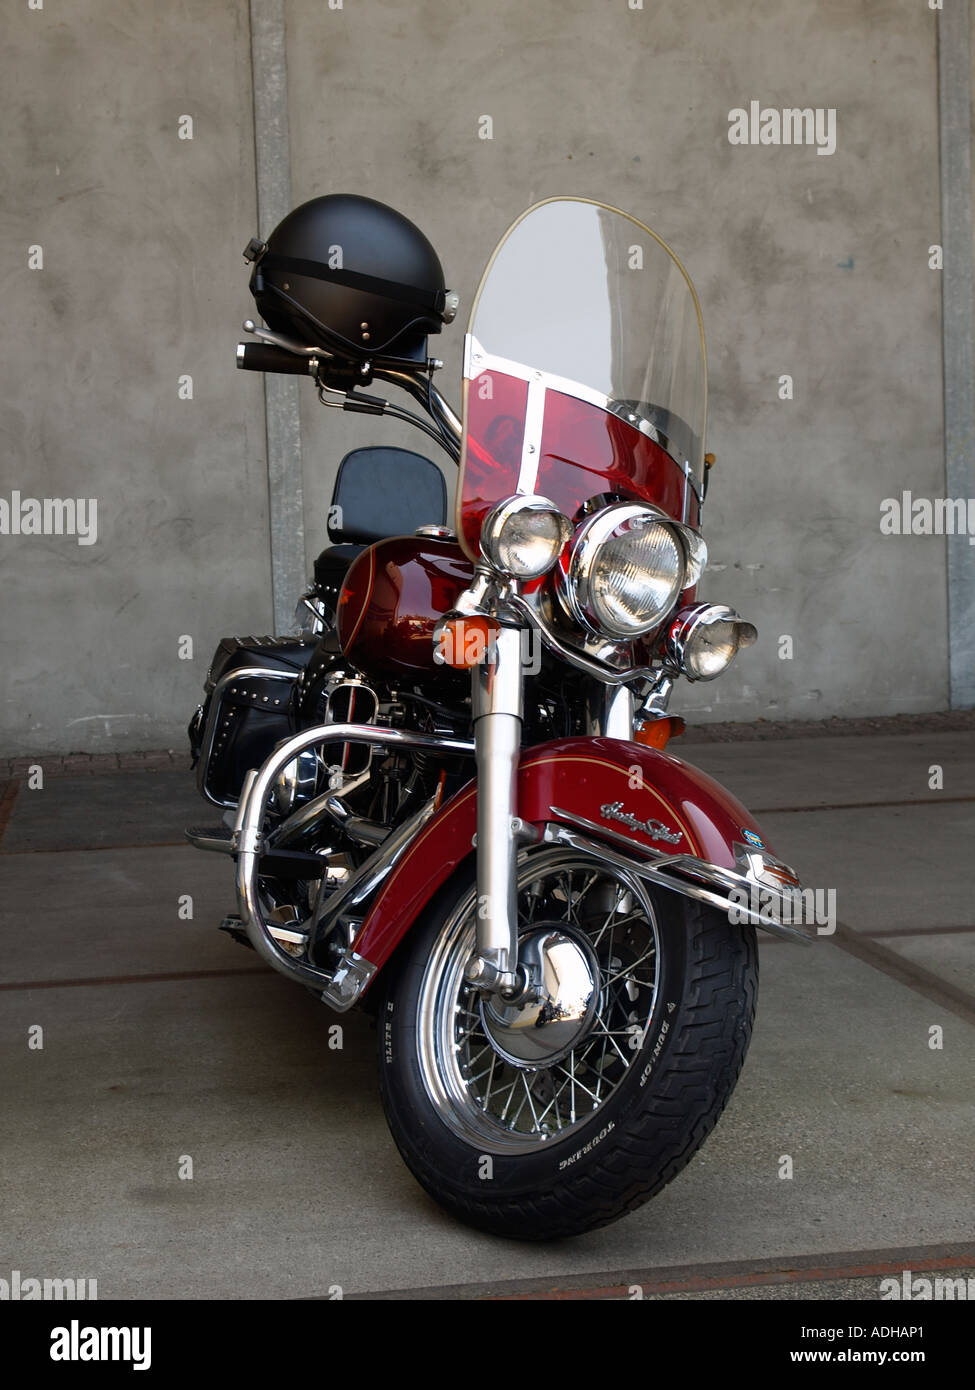 Cherry Red Harley Davidson Heritage Softail Motorcycle Parked Front View With Helmet On The Handlebar Breda Netherlands